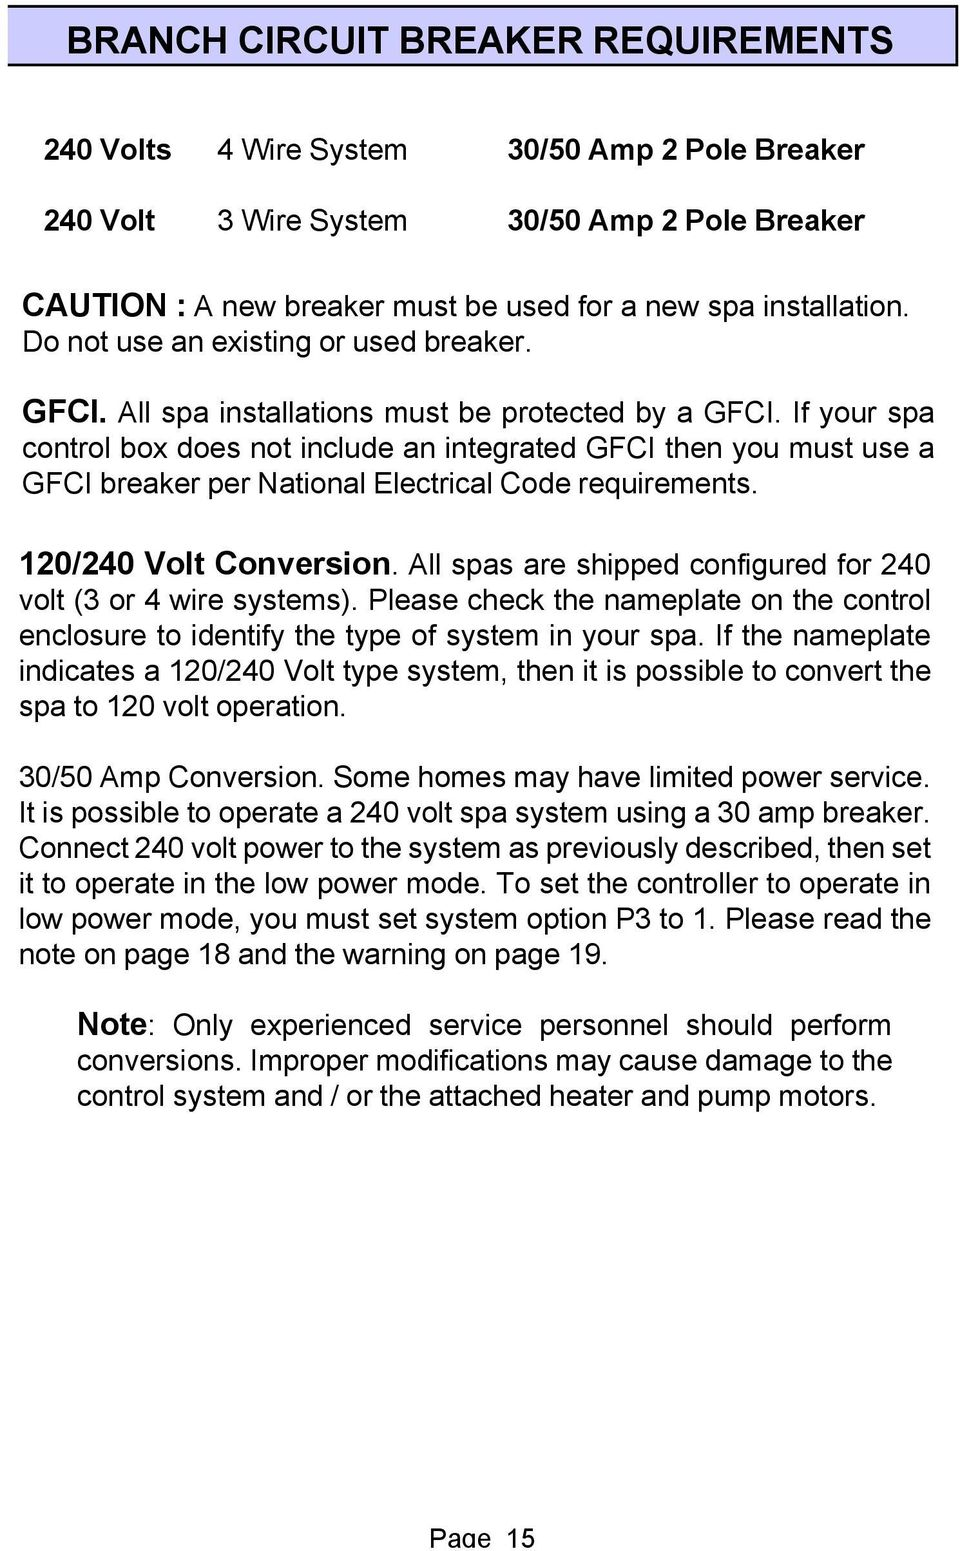 Smartouch Digital User Manual 701 W Foothill Blvd Azusa Ca 626 Wiring Existing Box If Your Spa Control Does Not Include An Integrated Gfci Then You Must Use A